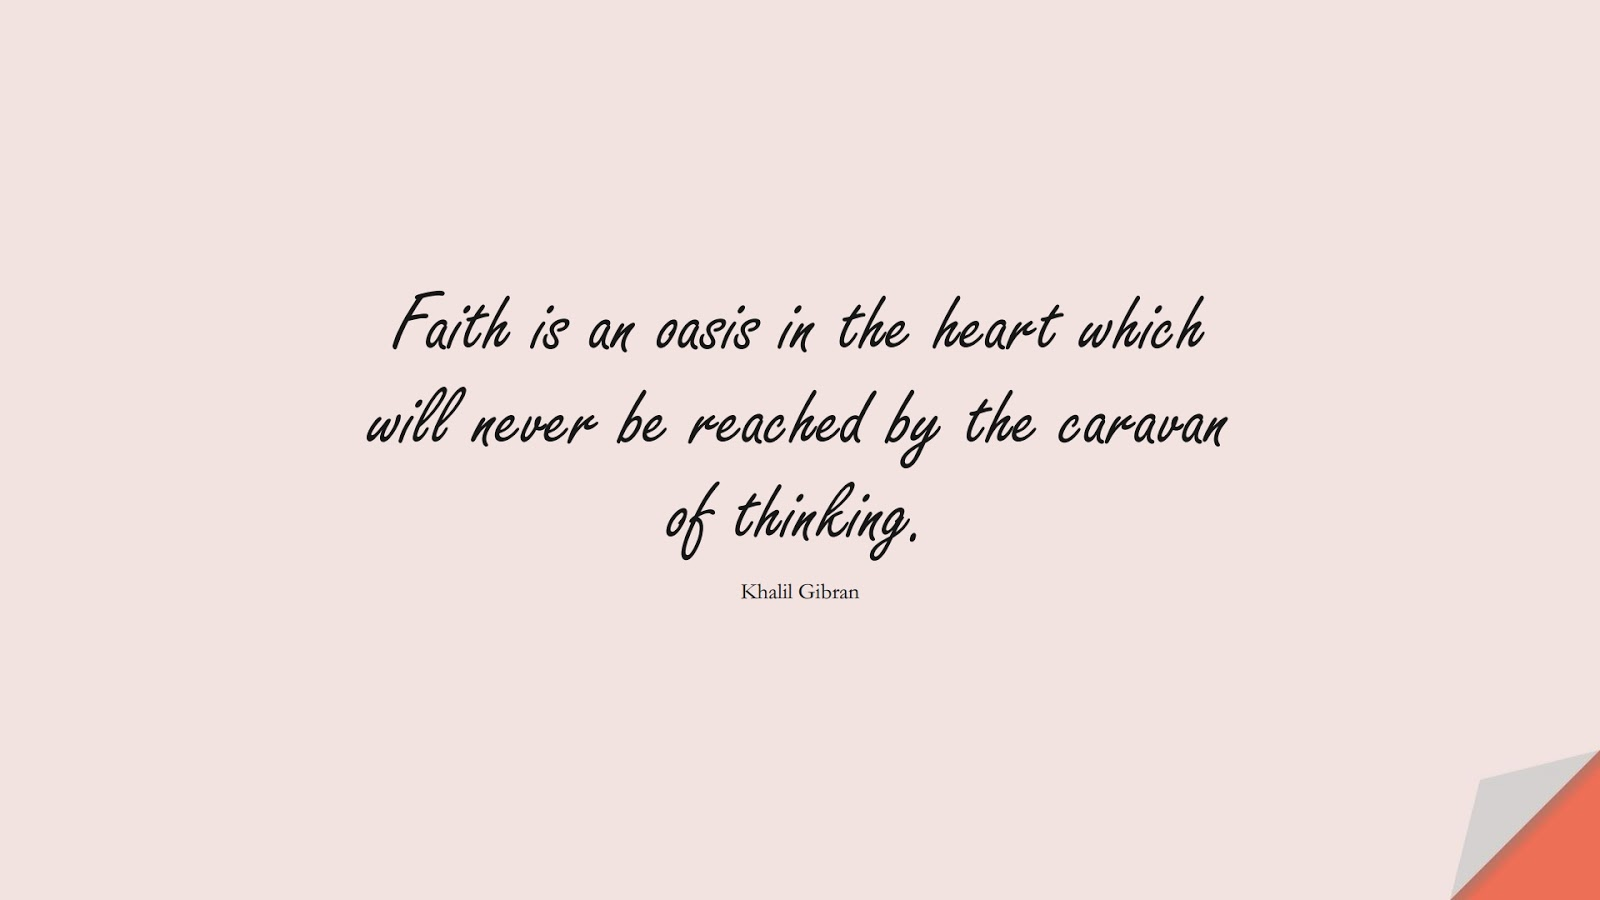 Faith is an oasis in the heart which will never be reached by the caravan of thinking. (Khalil Gibran);  #InspirationalQuotes